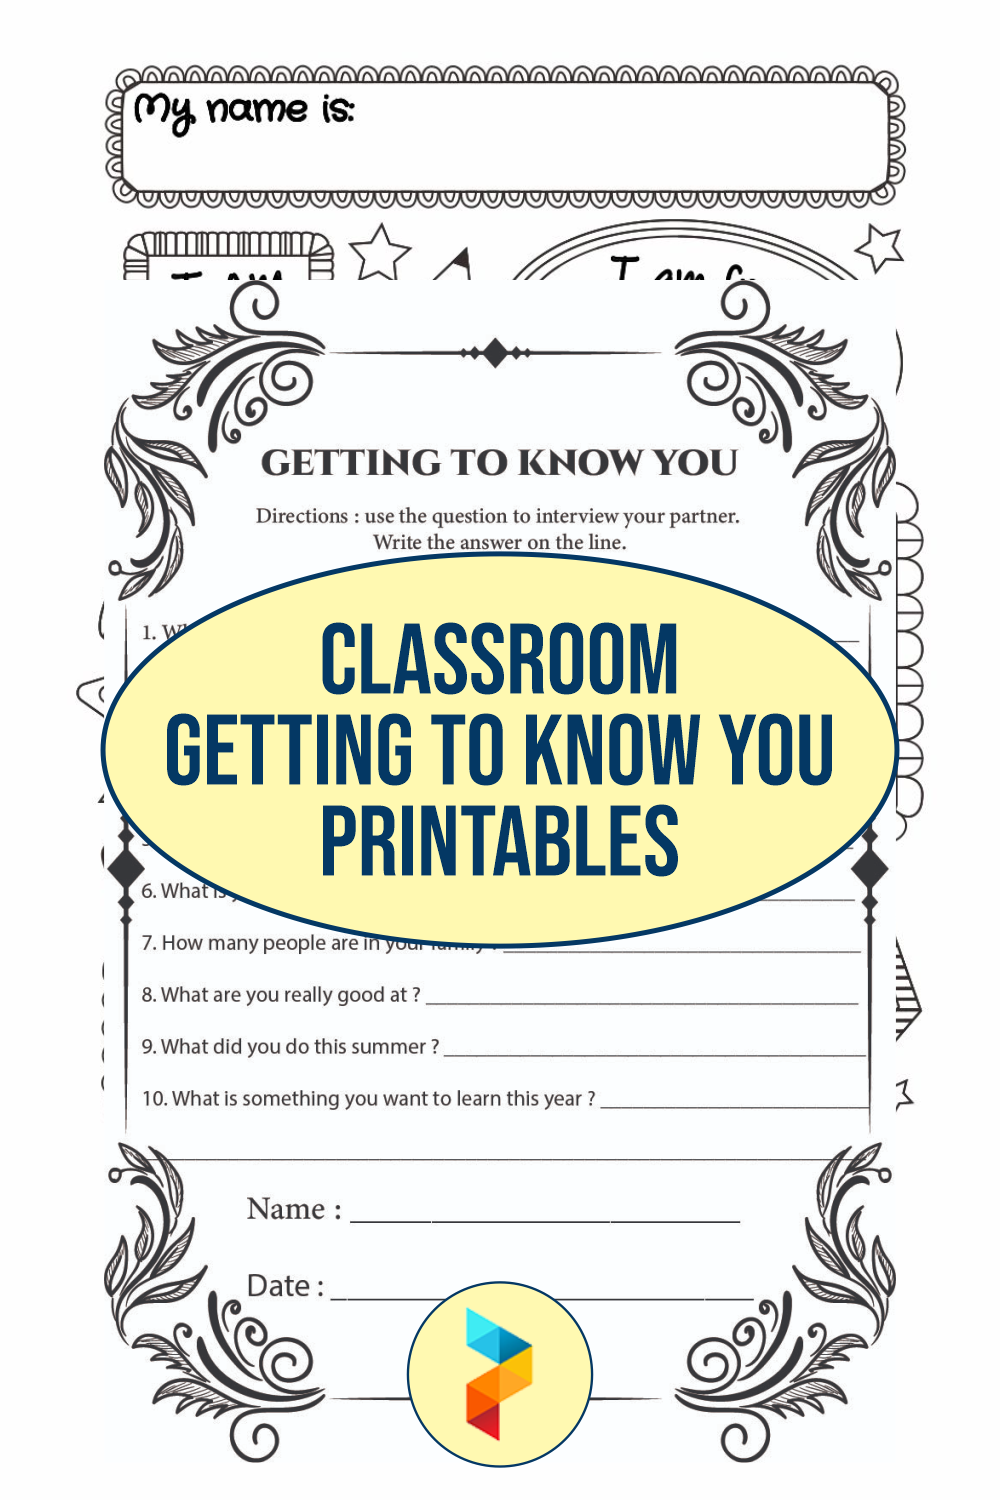 Classroom Getting To Know You Printables